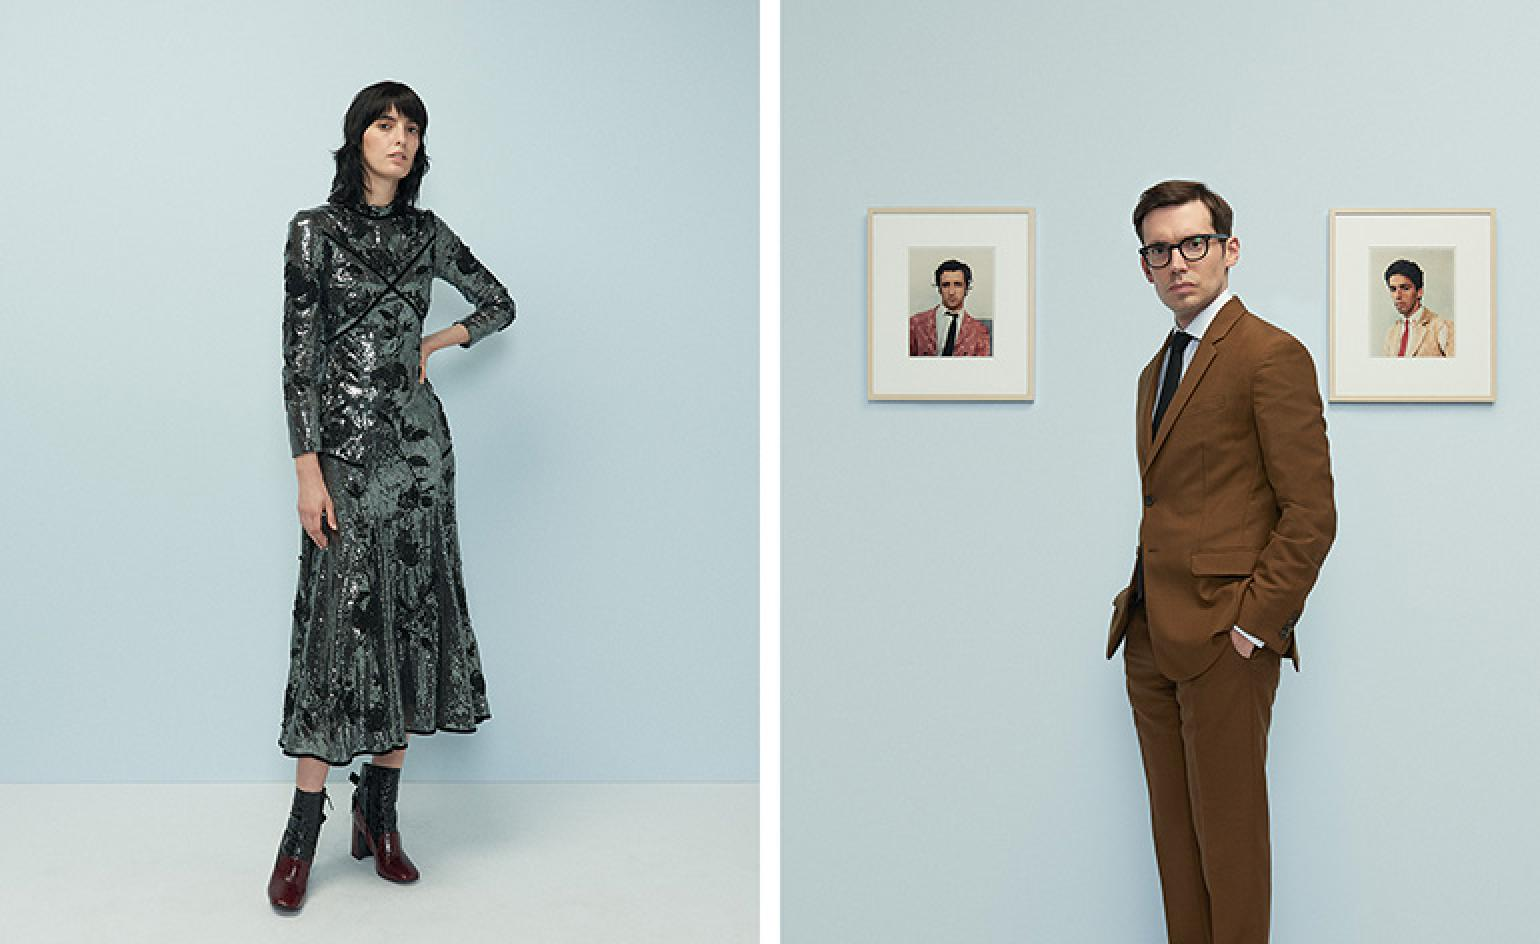 Erdem Moralioglu on his passion for art, design, and his pursuit of the perfectly outfitted store